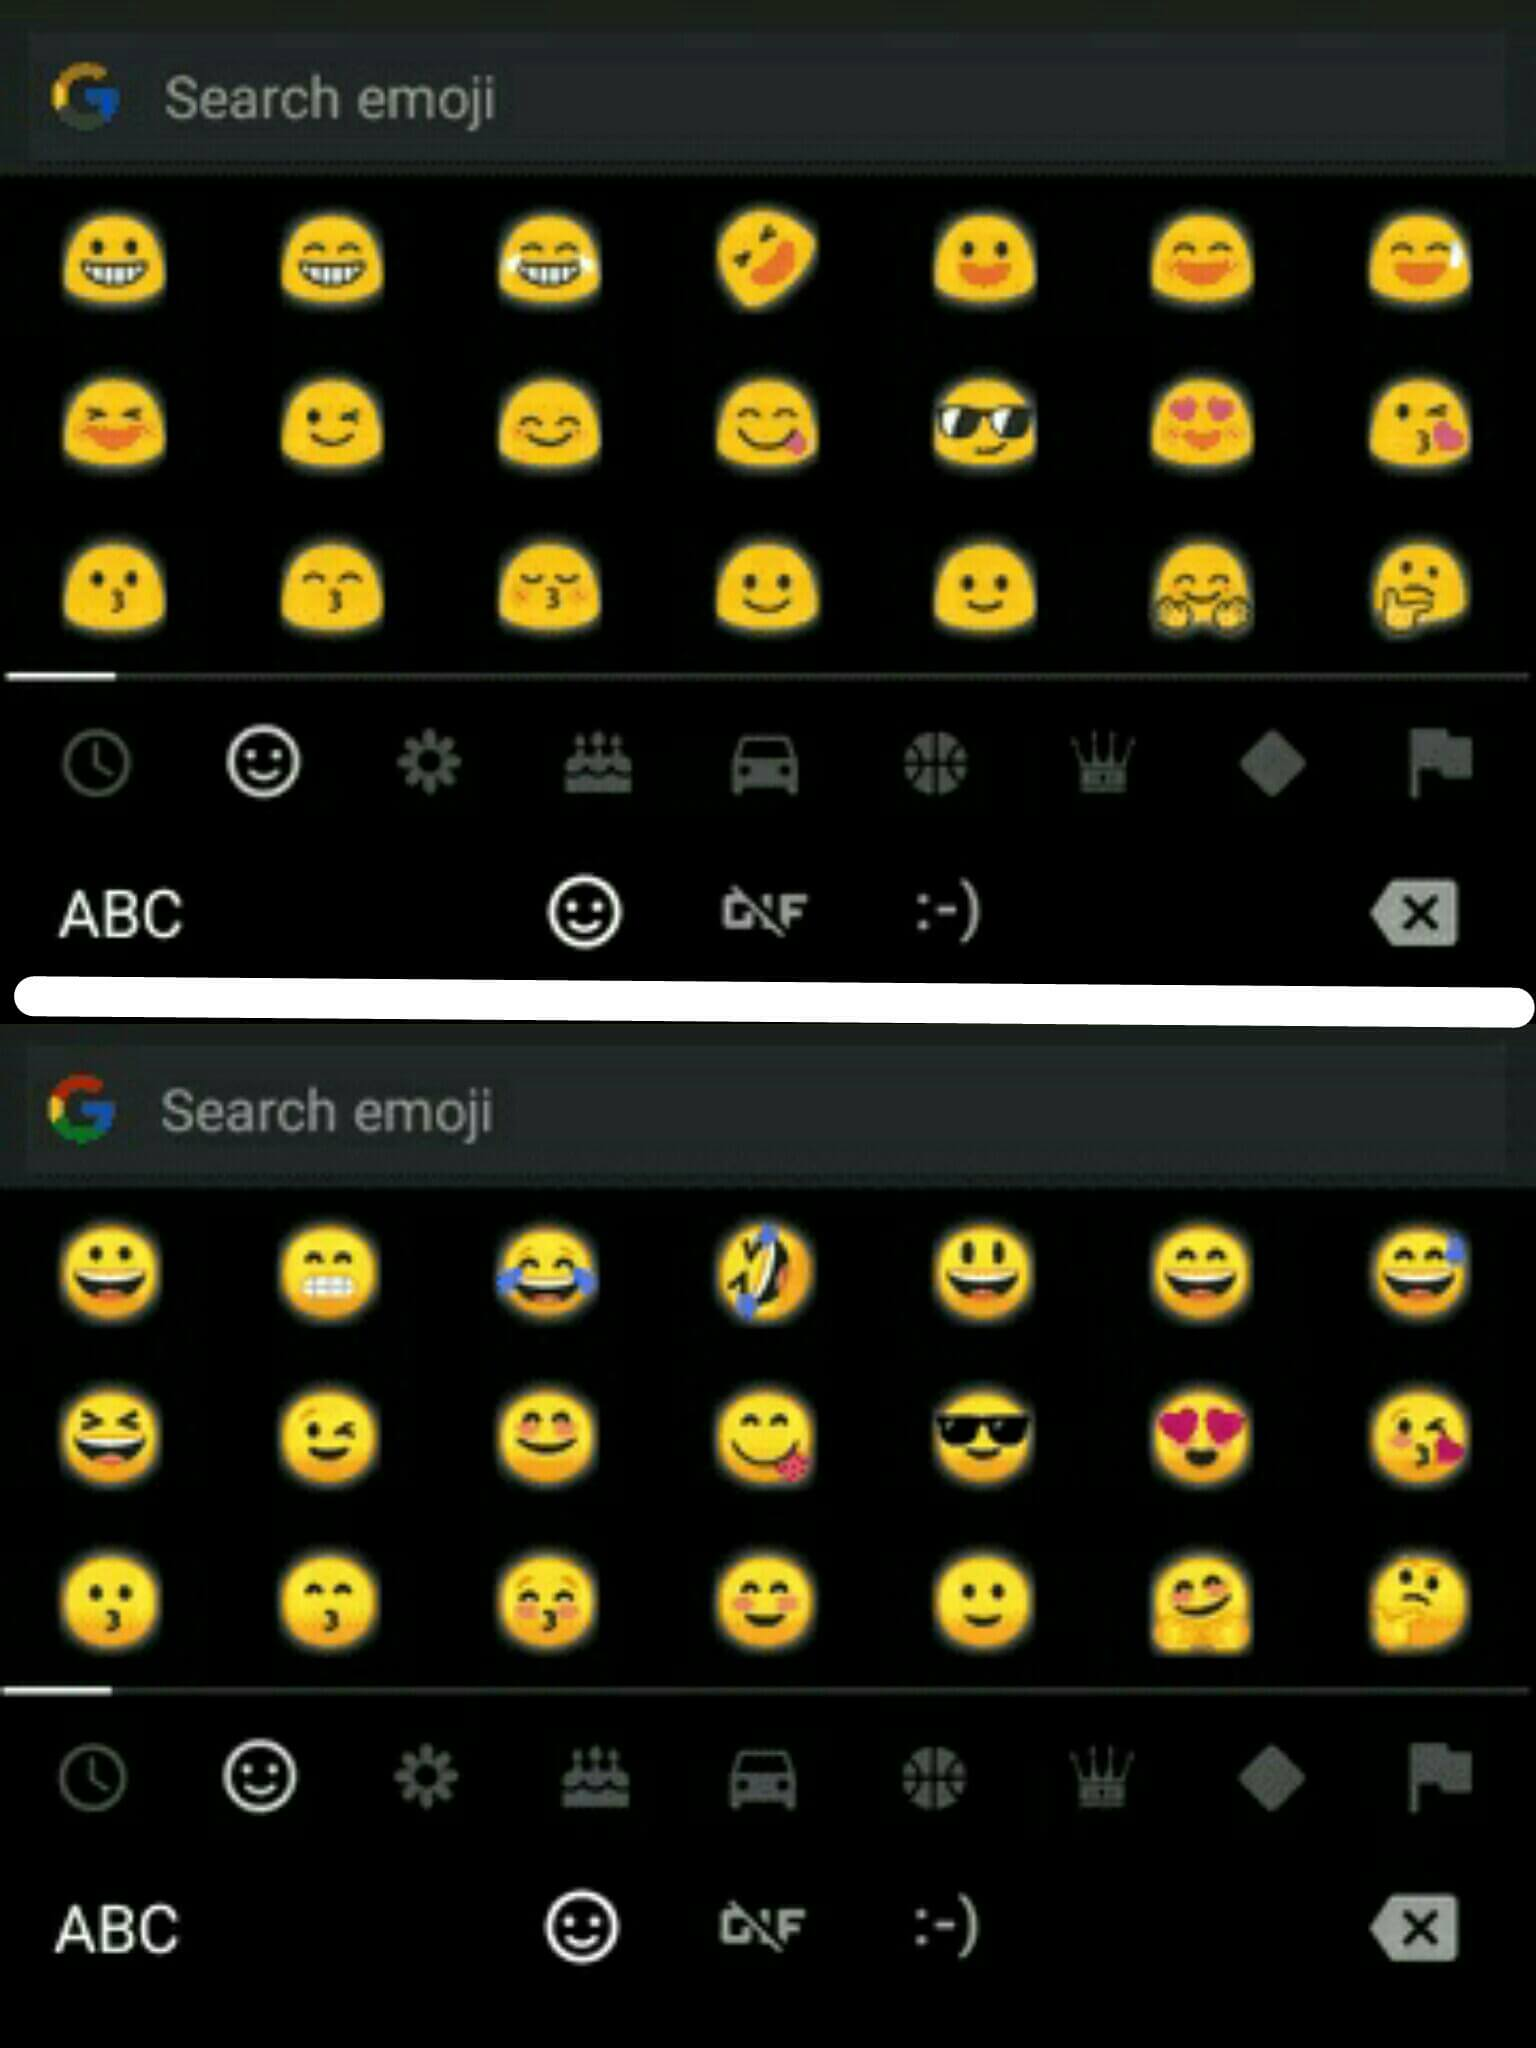 How to get new Android O emojis on Android Lollipop and above (5.0+)